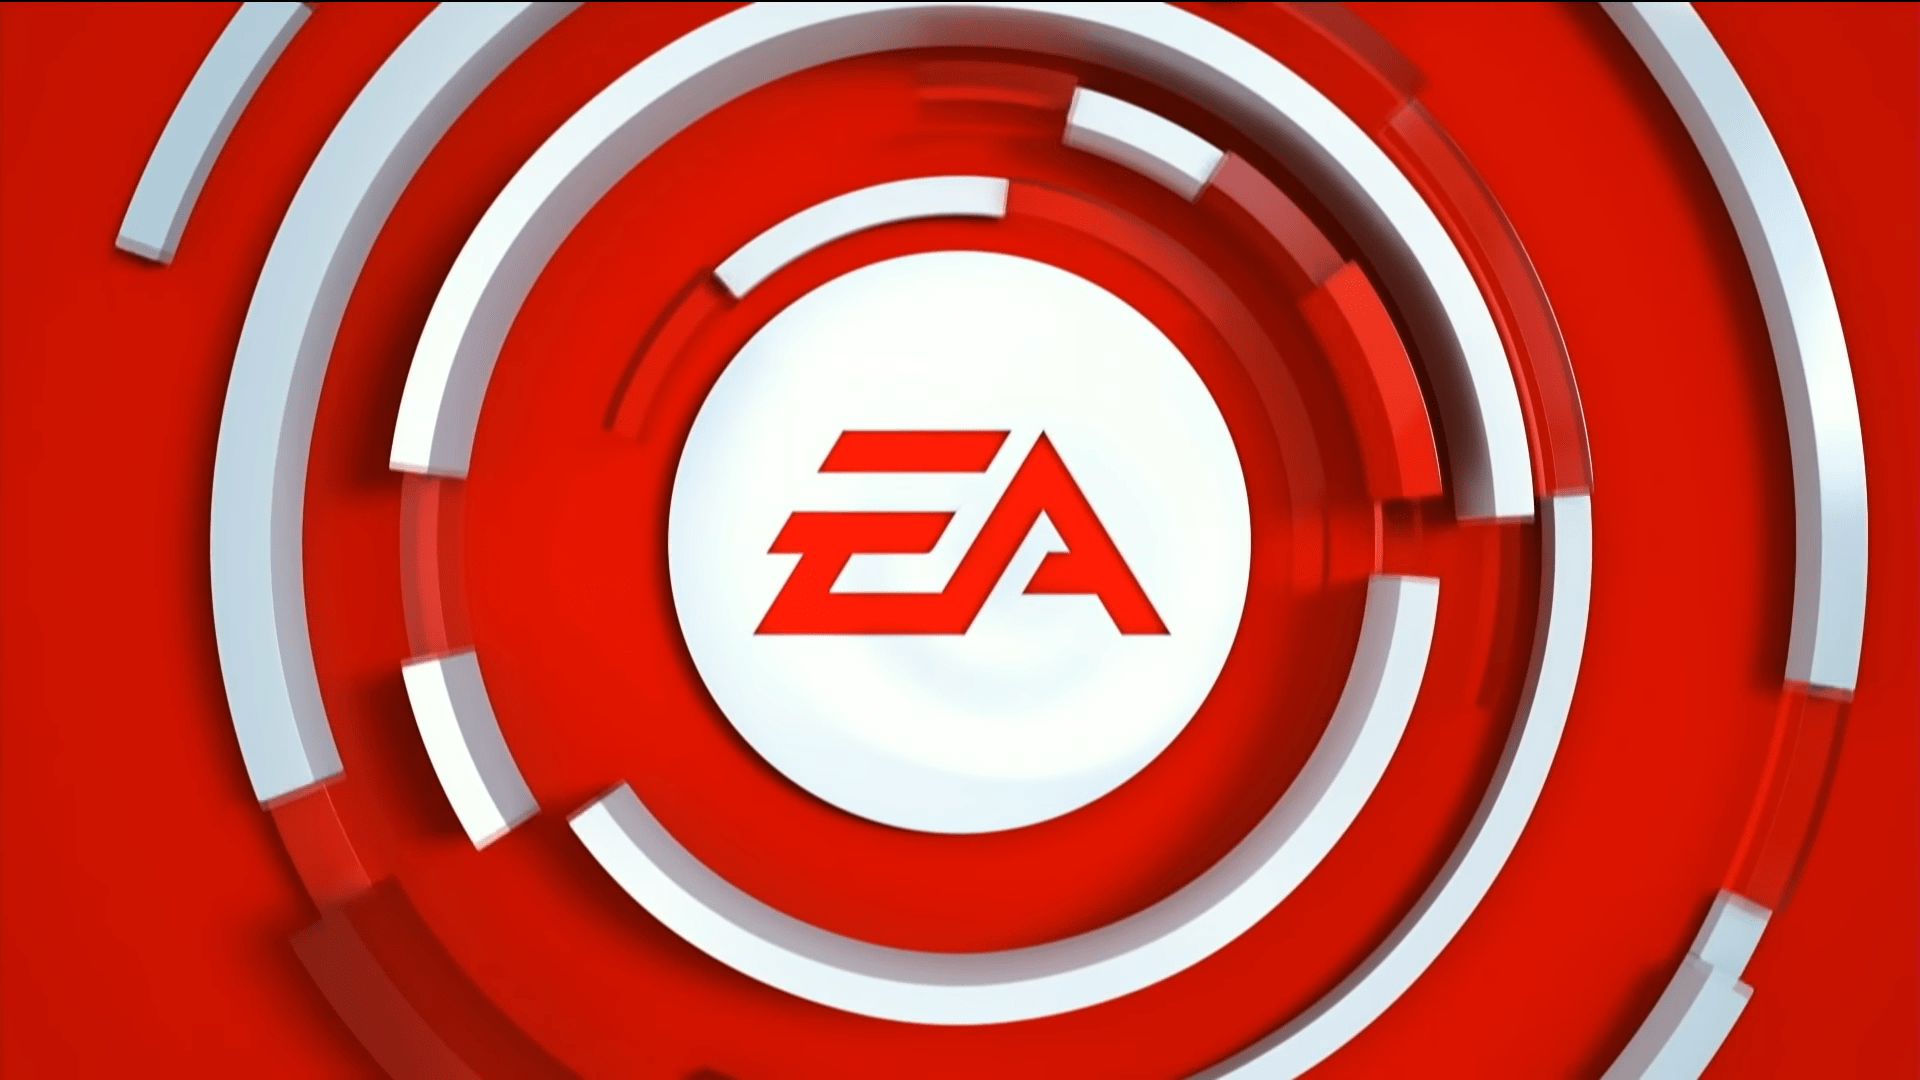 Sexism, Racial Slurs, Homophobia – In-Game Bullying Is A Problem And Electronic Arts Wants To Address It